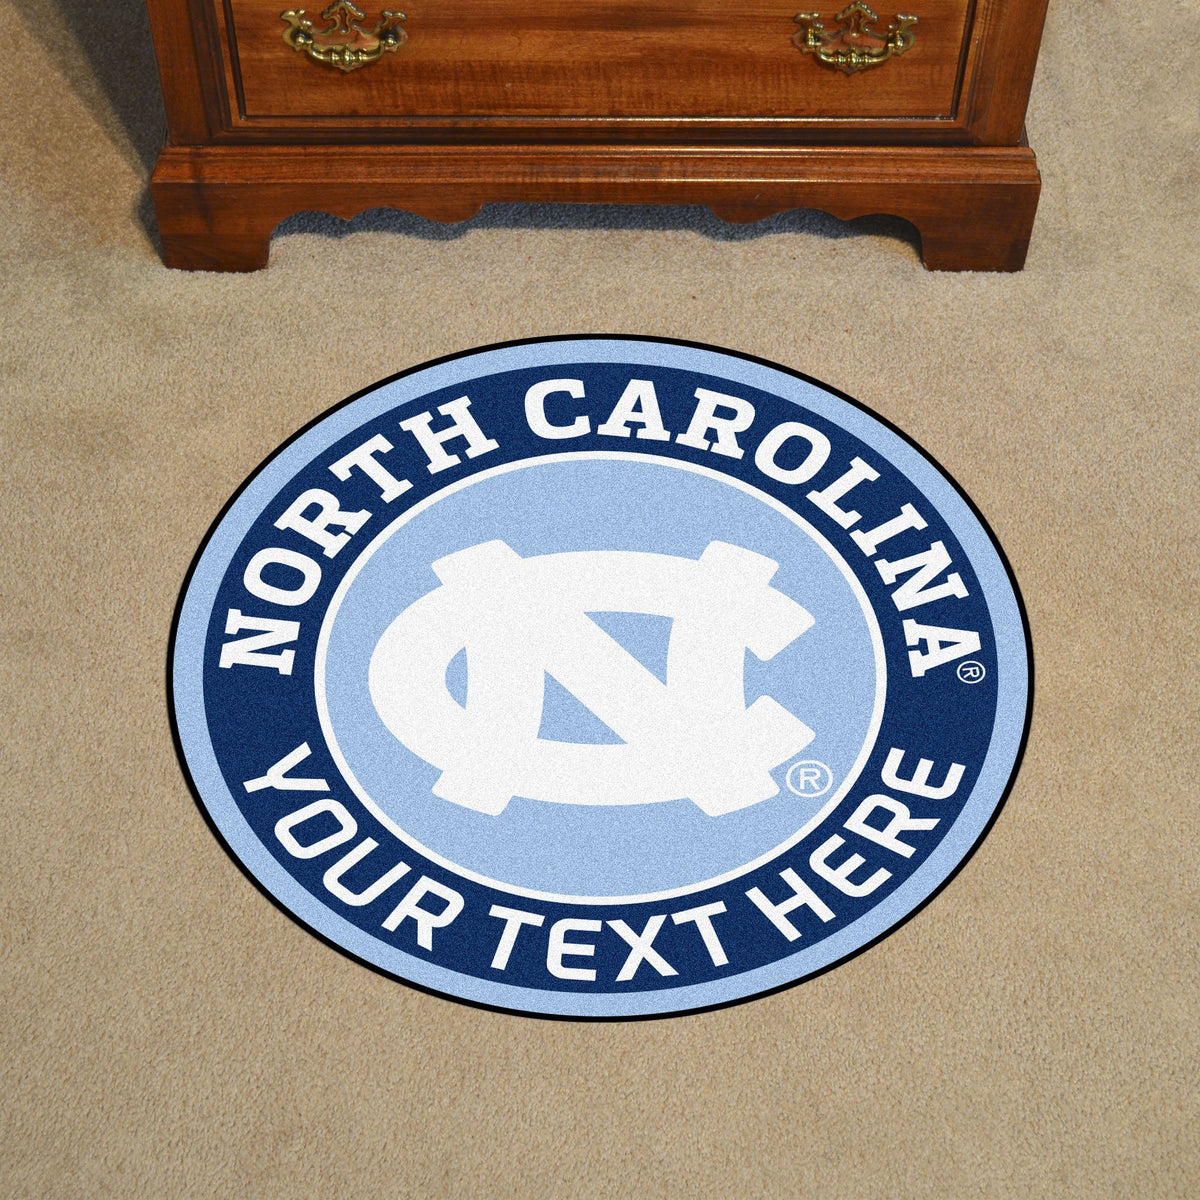 Collegiate Personalized Roundel Mat Personalized Roundel Mat Fan Mats UNC University of North Carolina - Chapel Hill